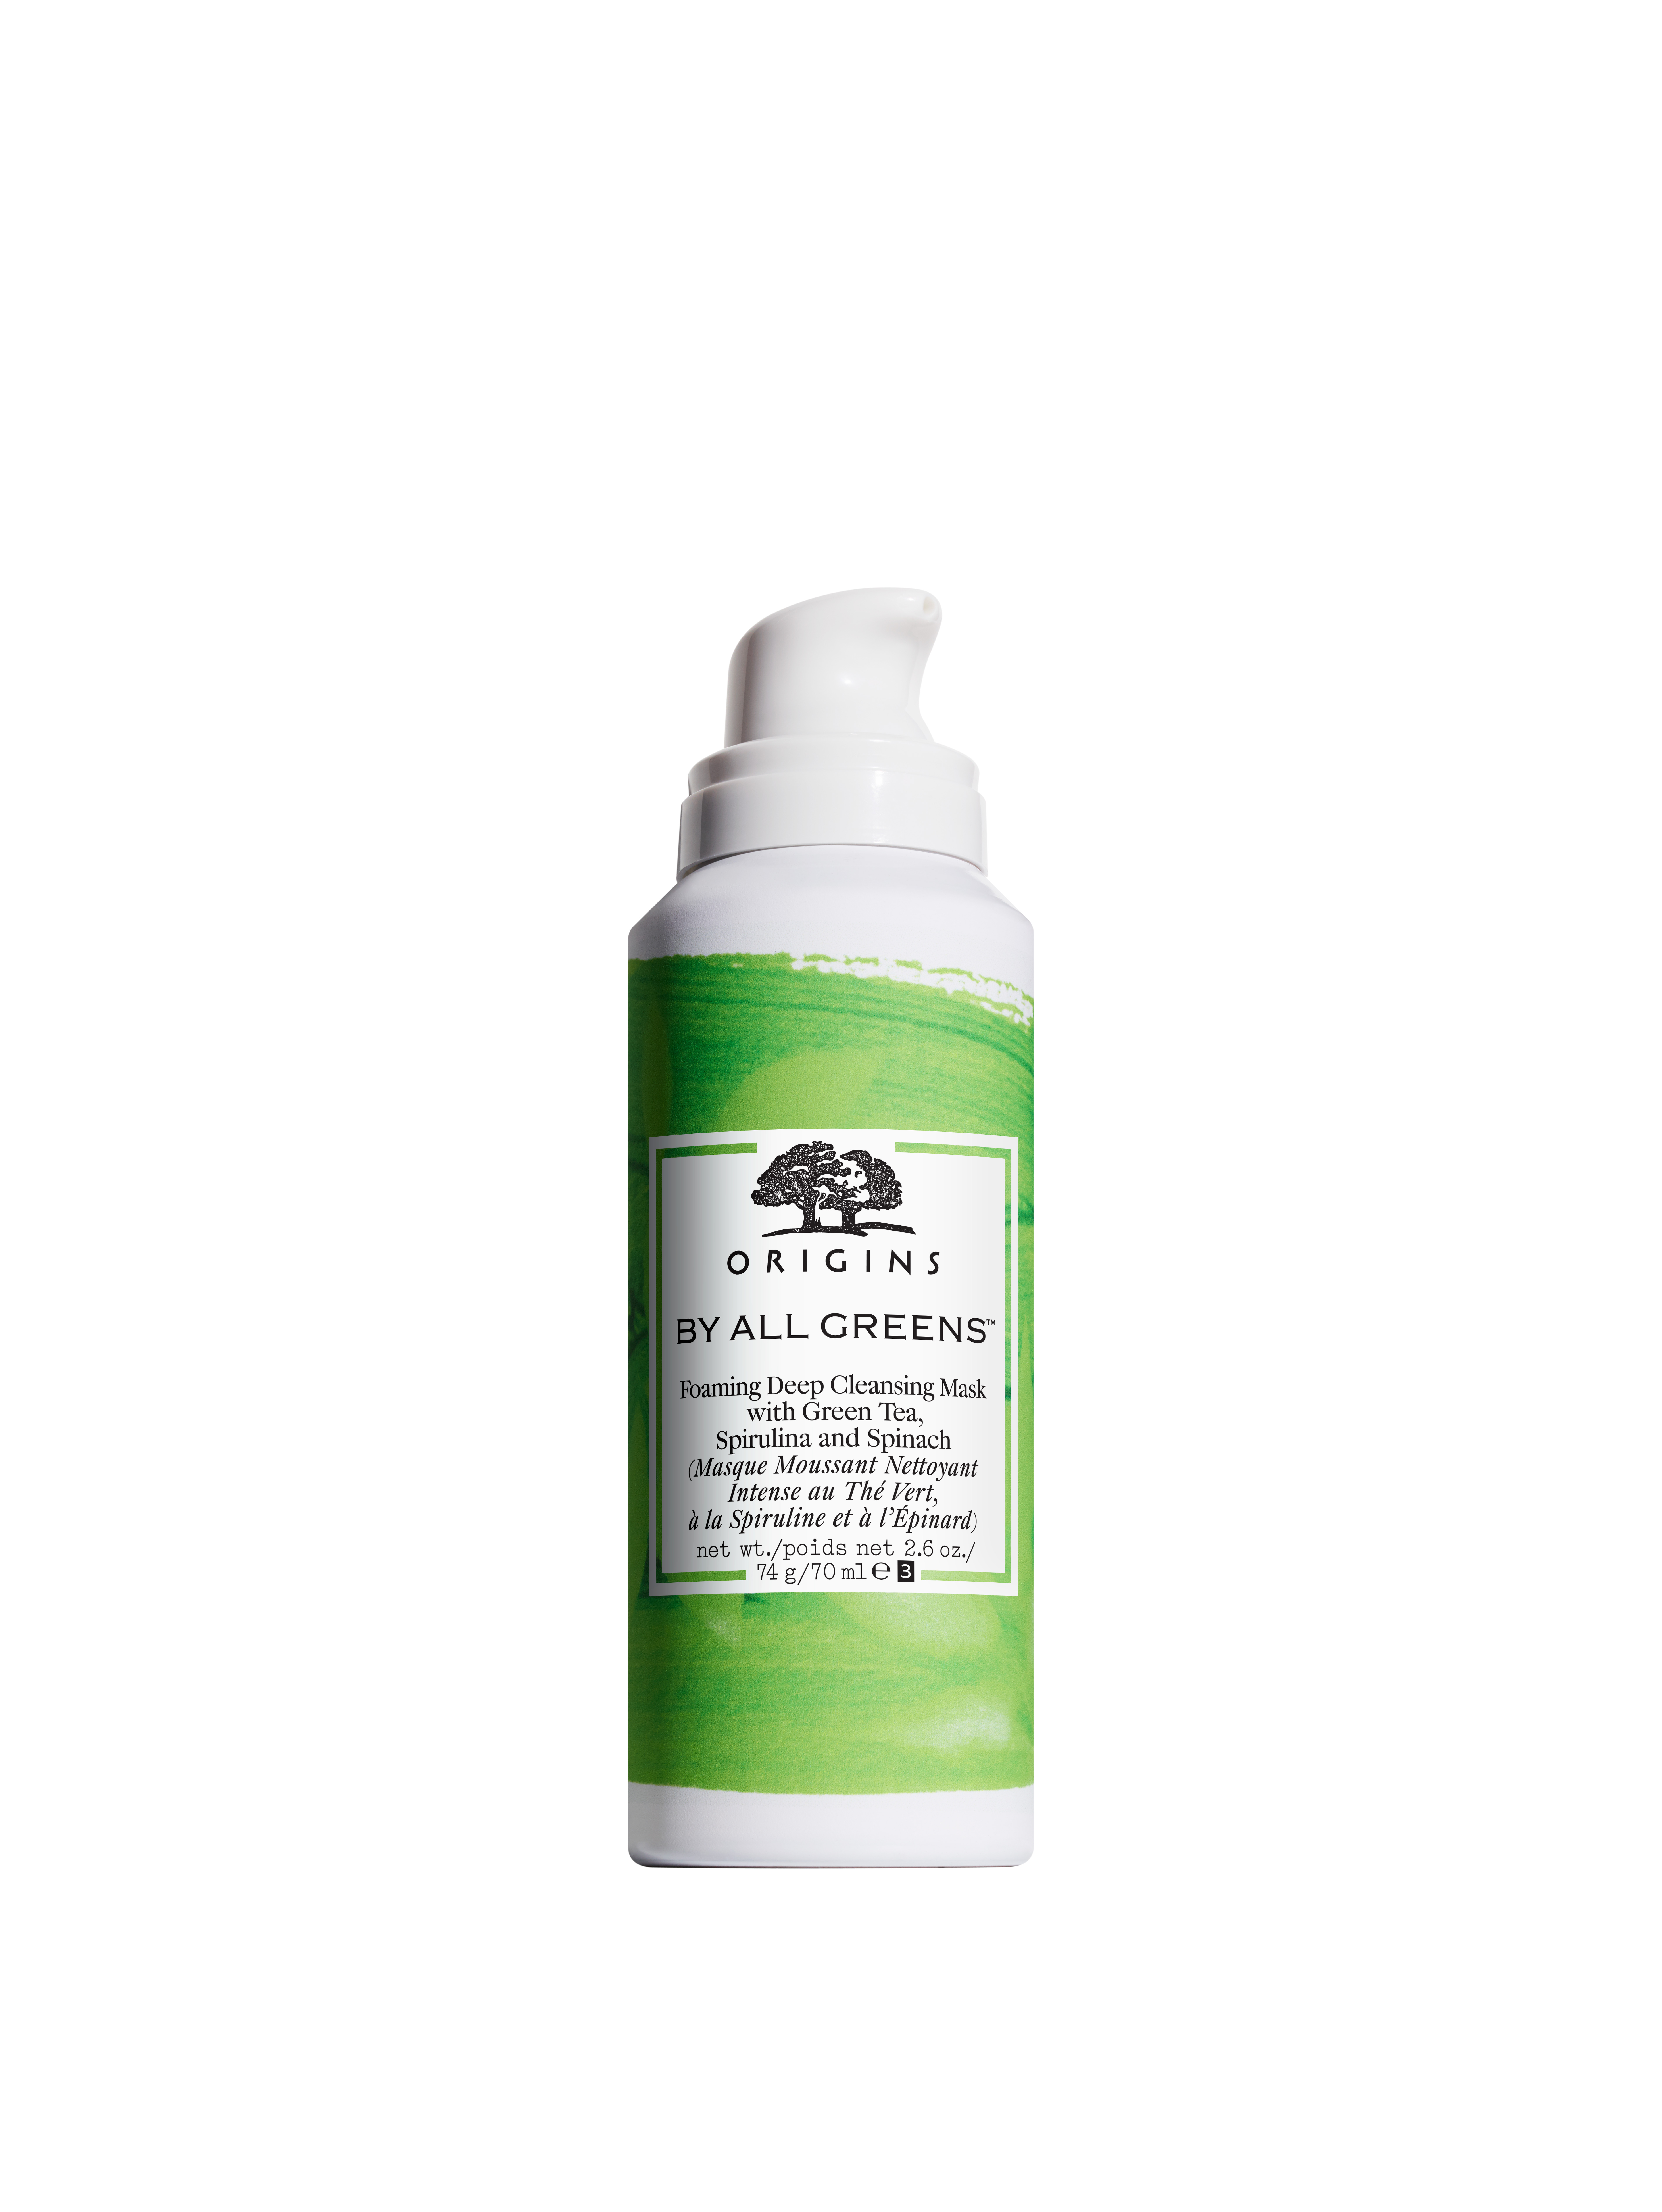 By All Greens Foaming cleansing facial mask